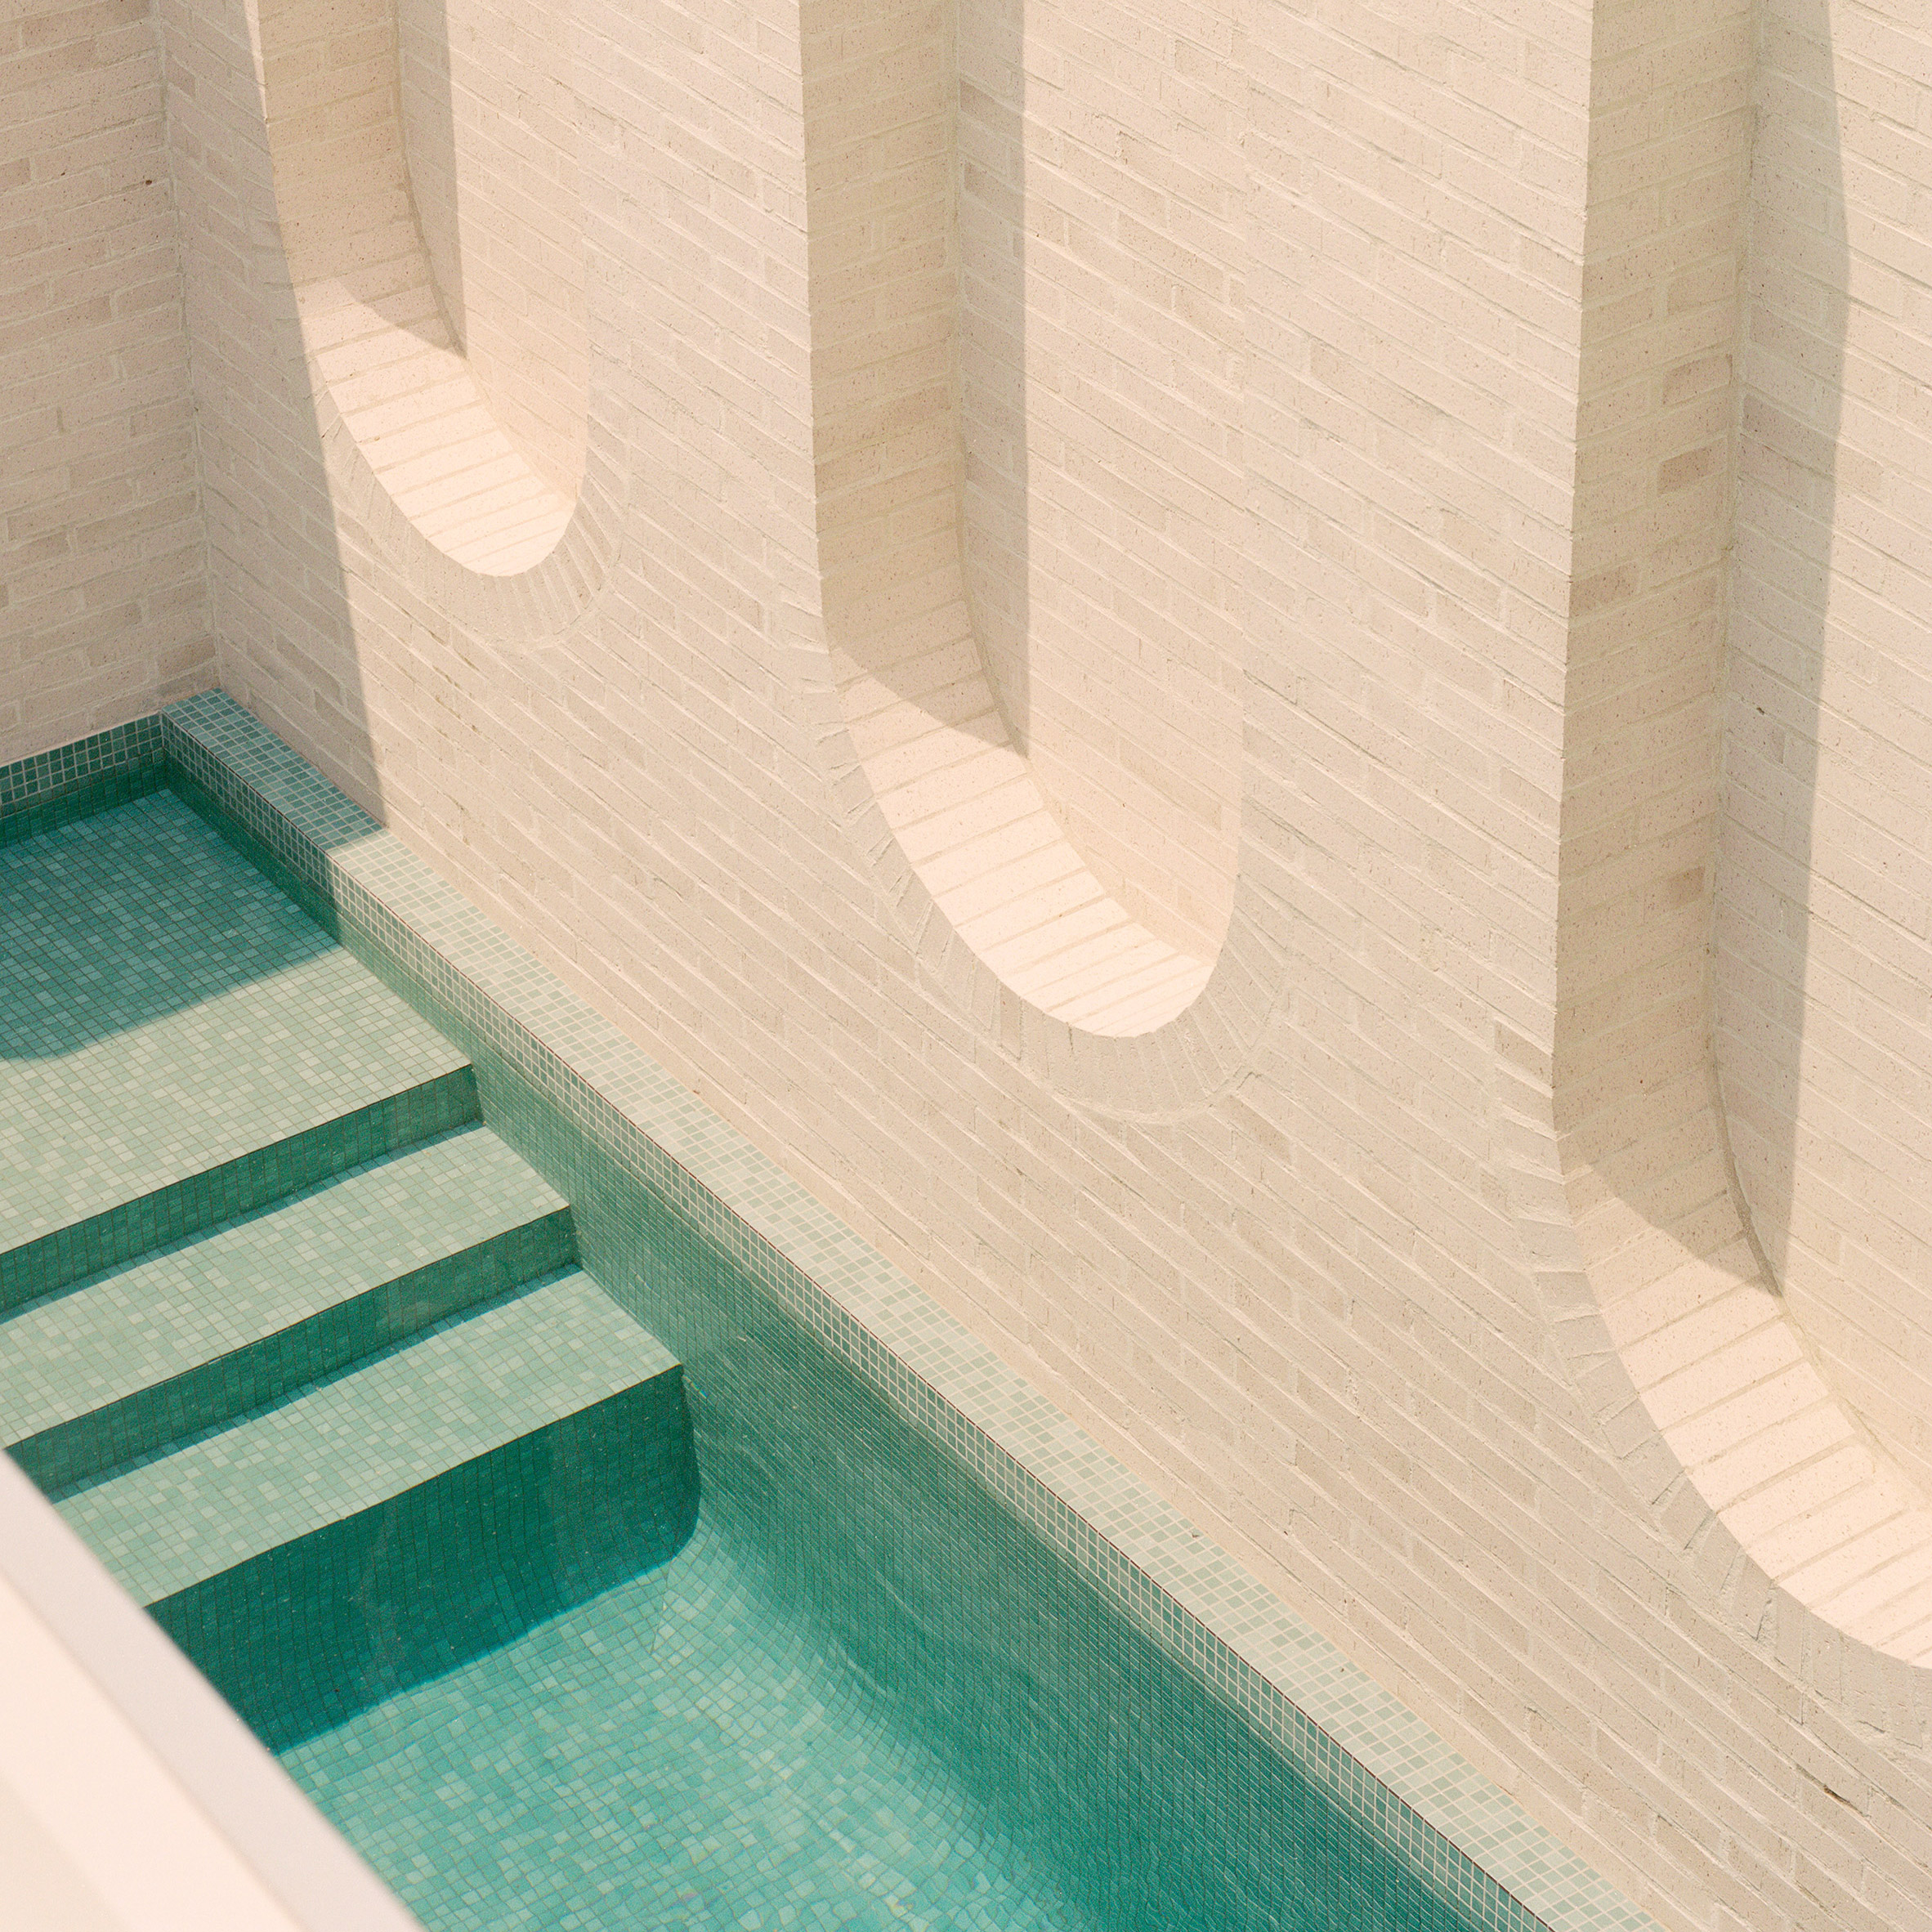 Architectural swimming pools: